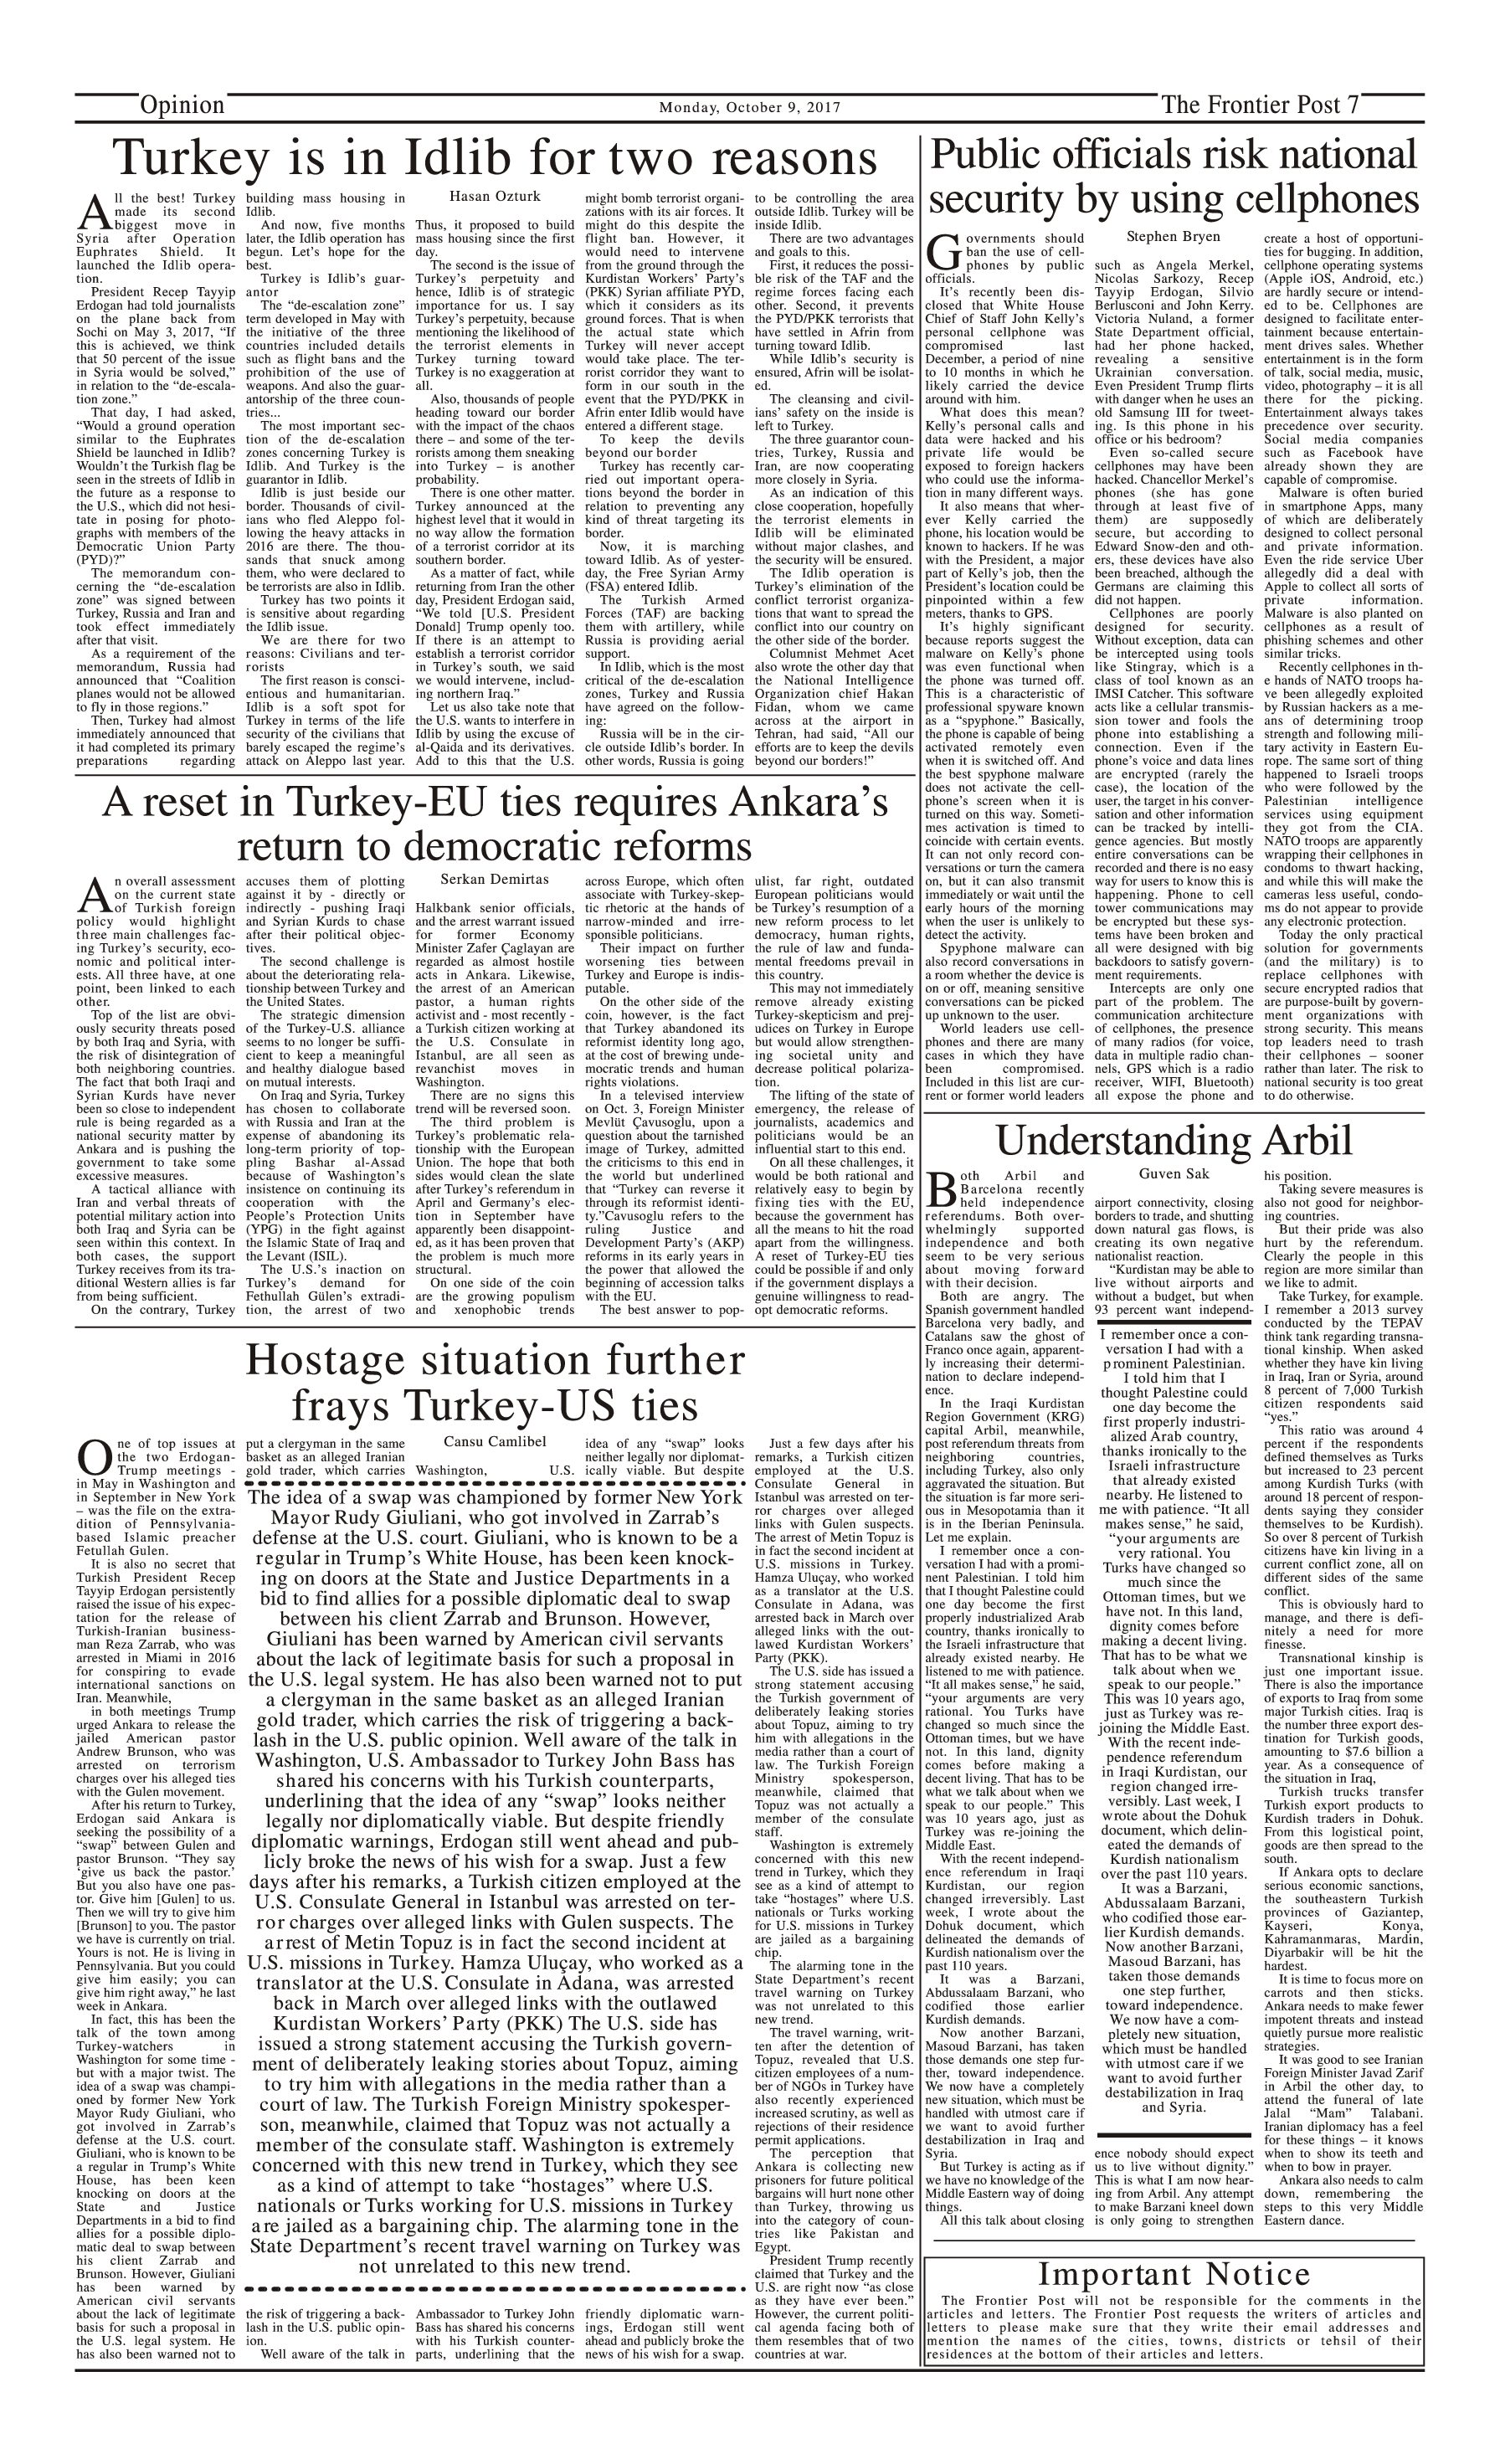 Opinion Page 9-10